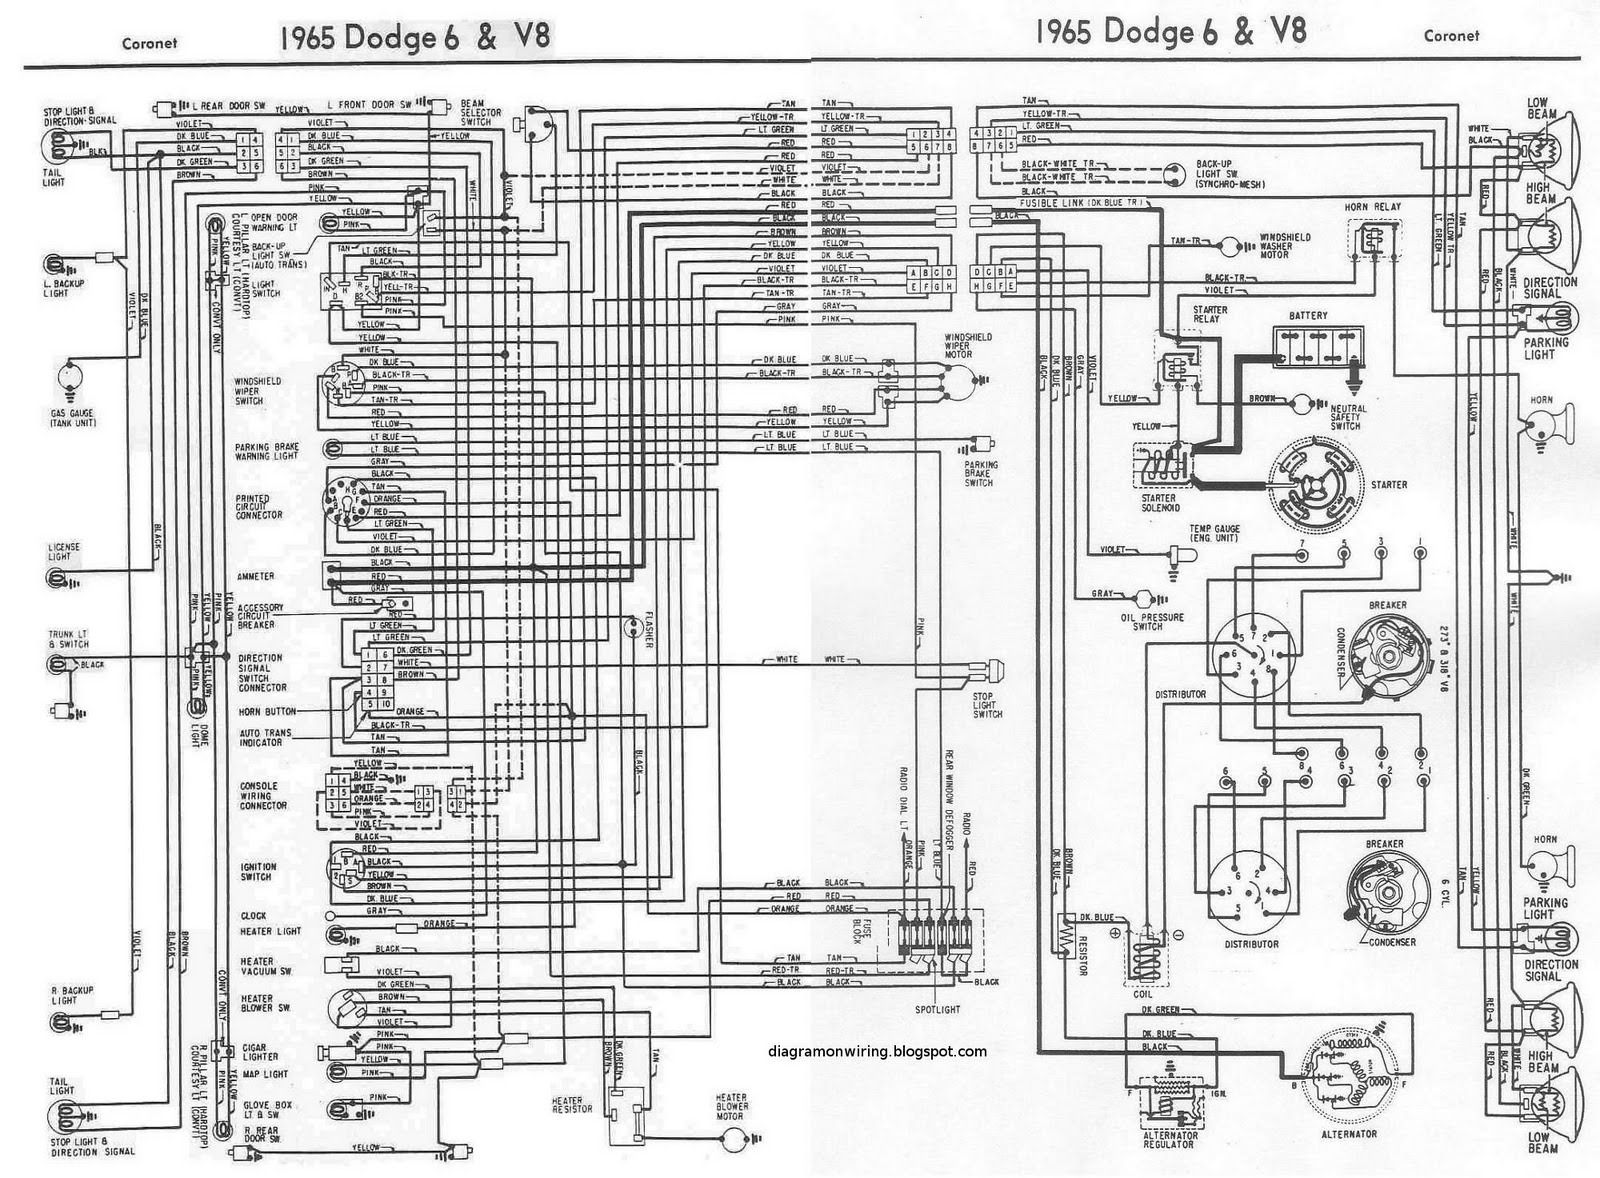 Beautiful 71 Chevelle Wiring Diagrams Adornment Electrical Diagram